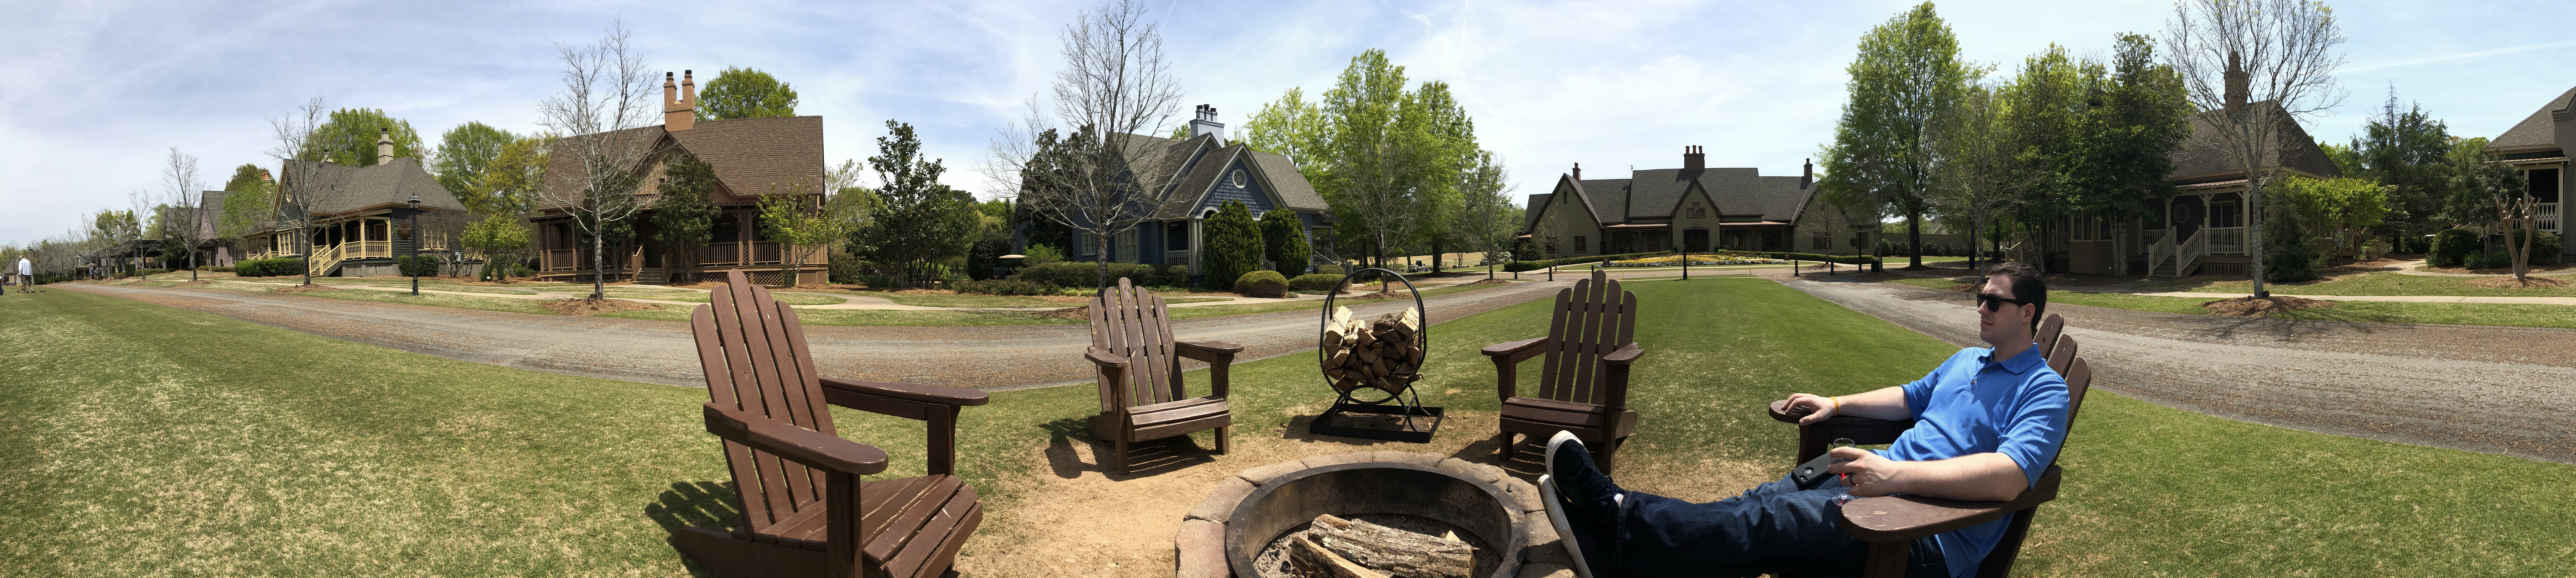 Affordable home decor » woodlands grill barnsley gardens | Home ...